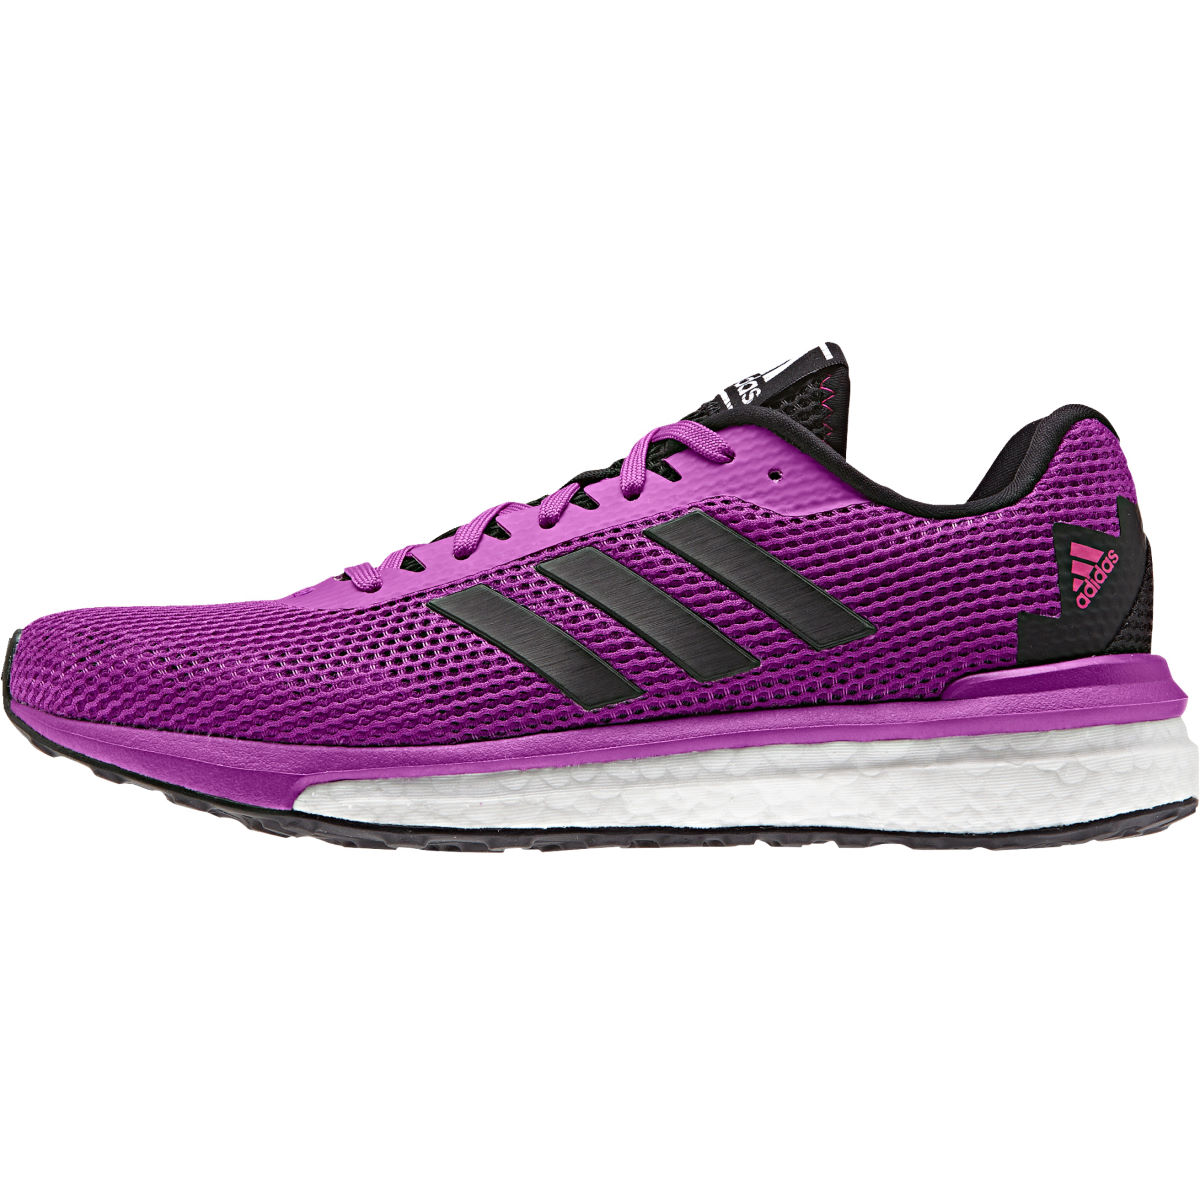 Adidas Womens Vengeful Shoes (AW16)   Cushion Running Shoes